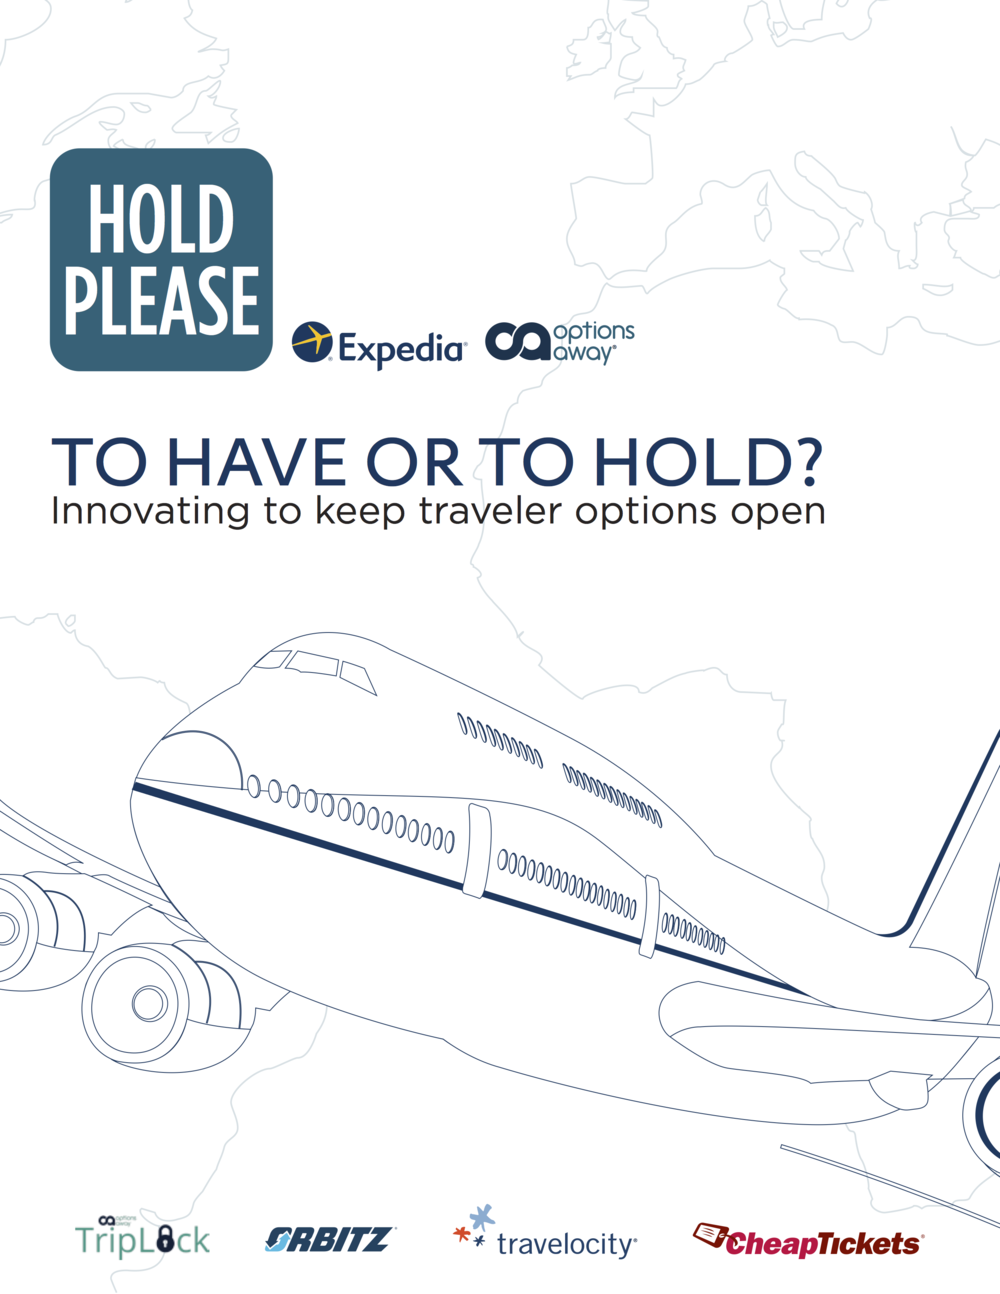 Options Away Expedia Case Study.png